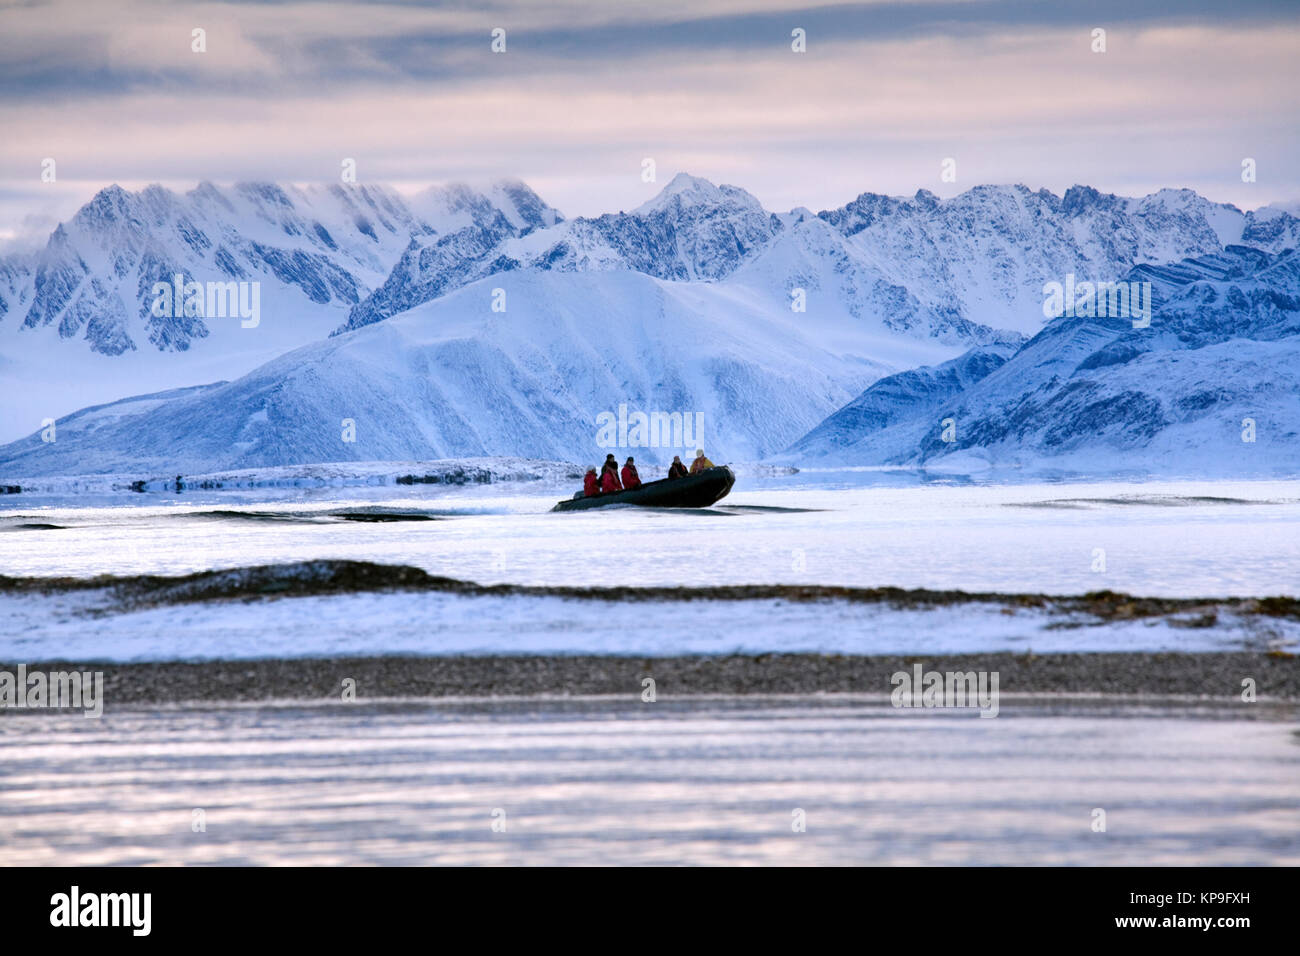 Adventure tourists on a zodiac in Raudfjord on the Svalbard Islands (Spitsbergen) in the High Arctic. - Stock Image